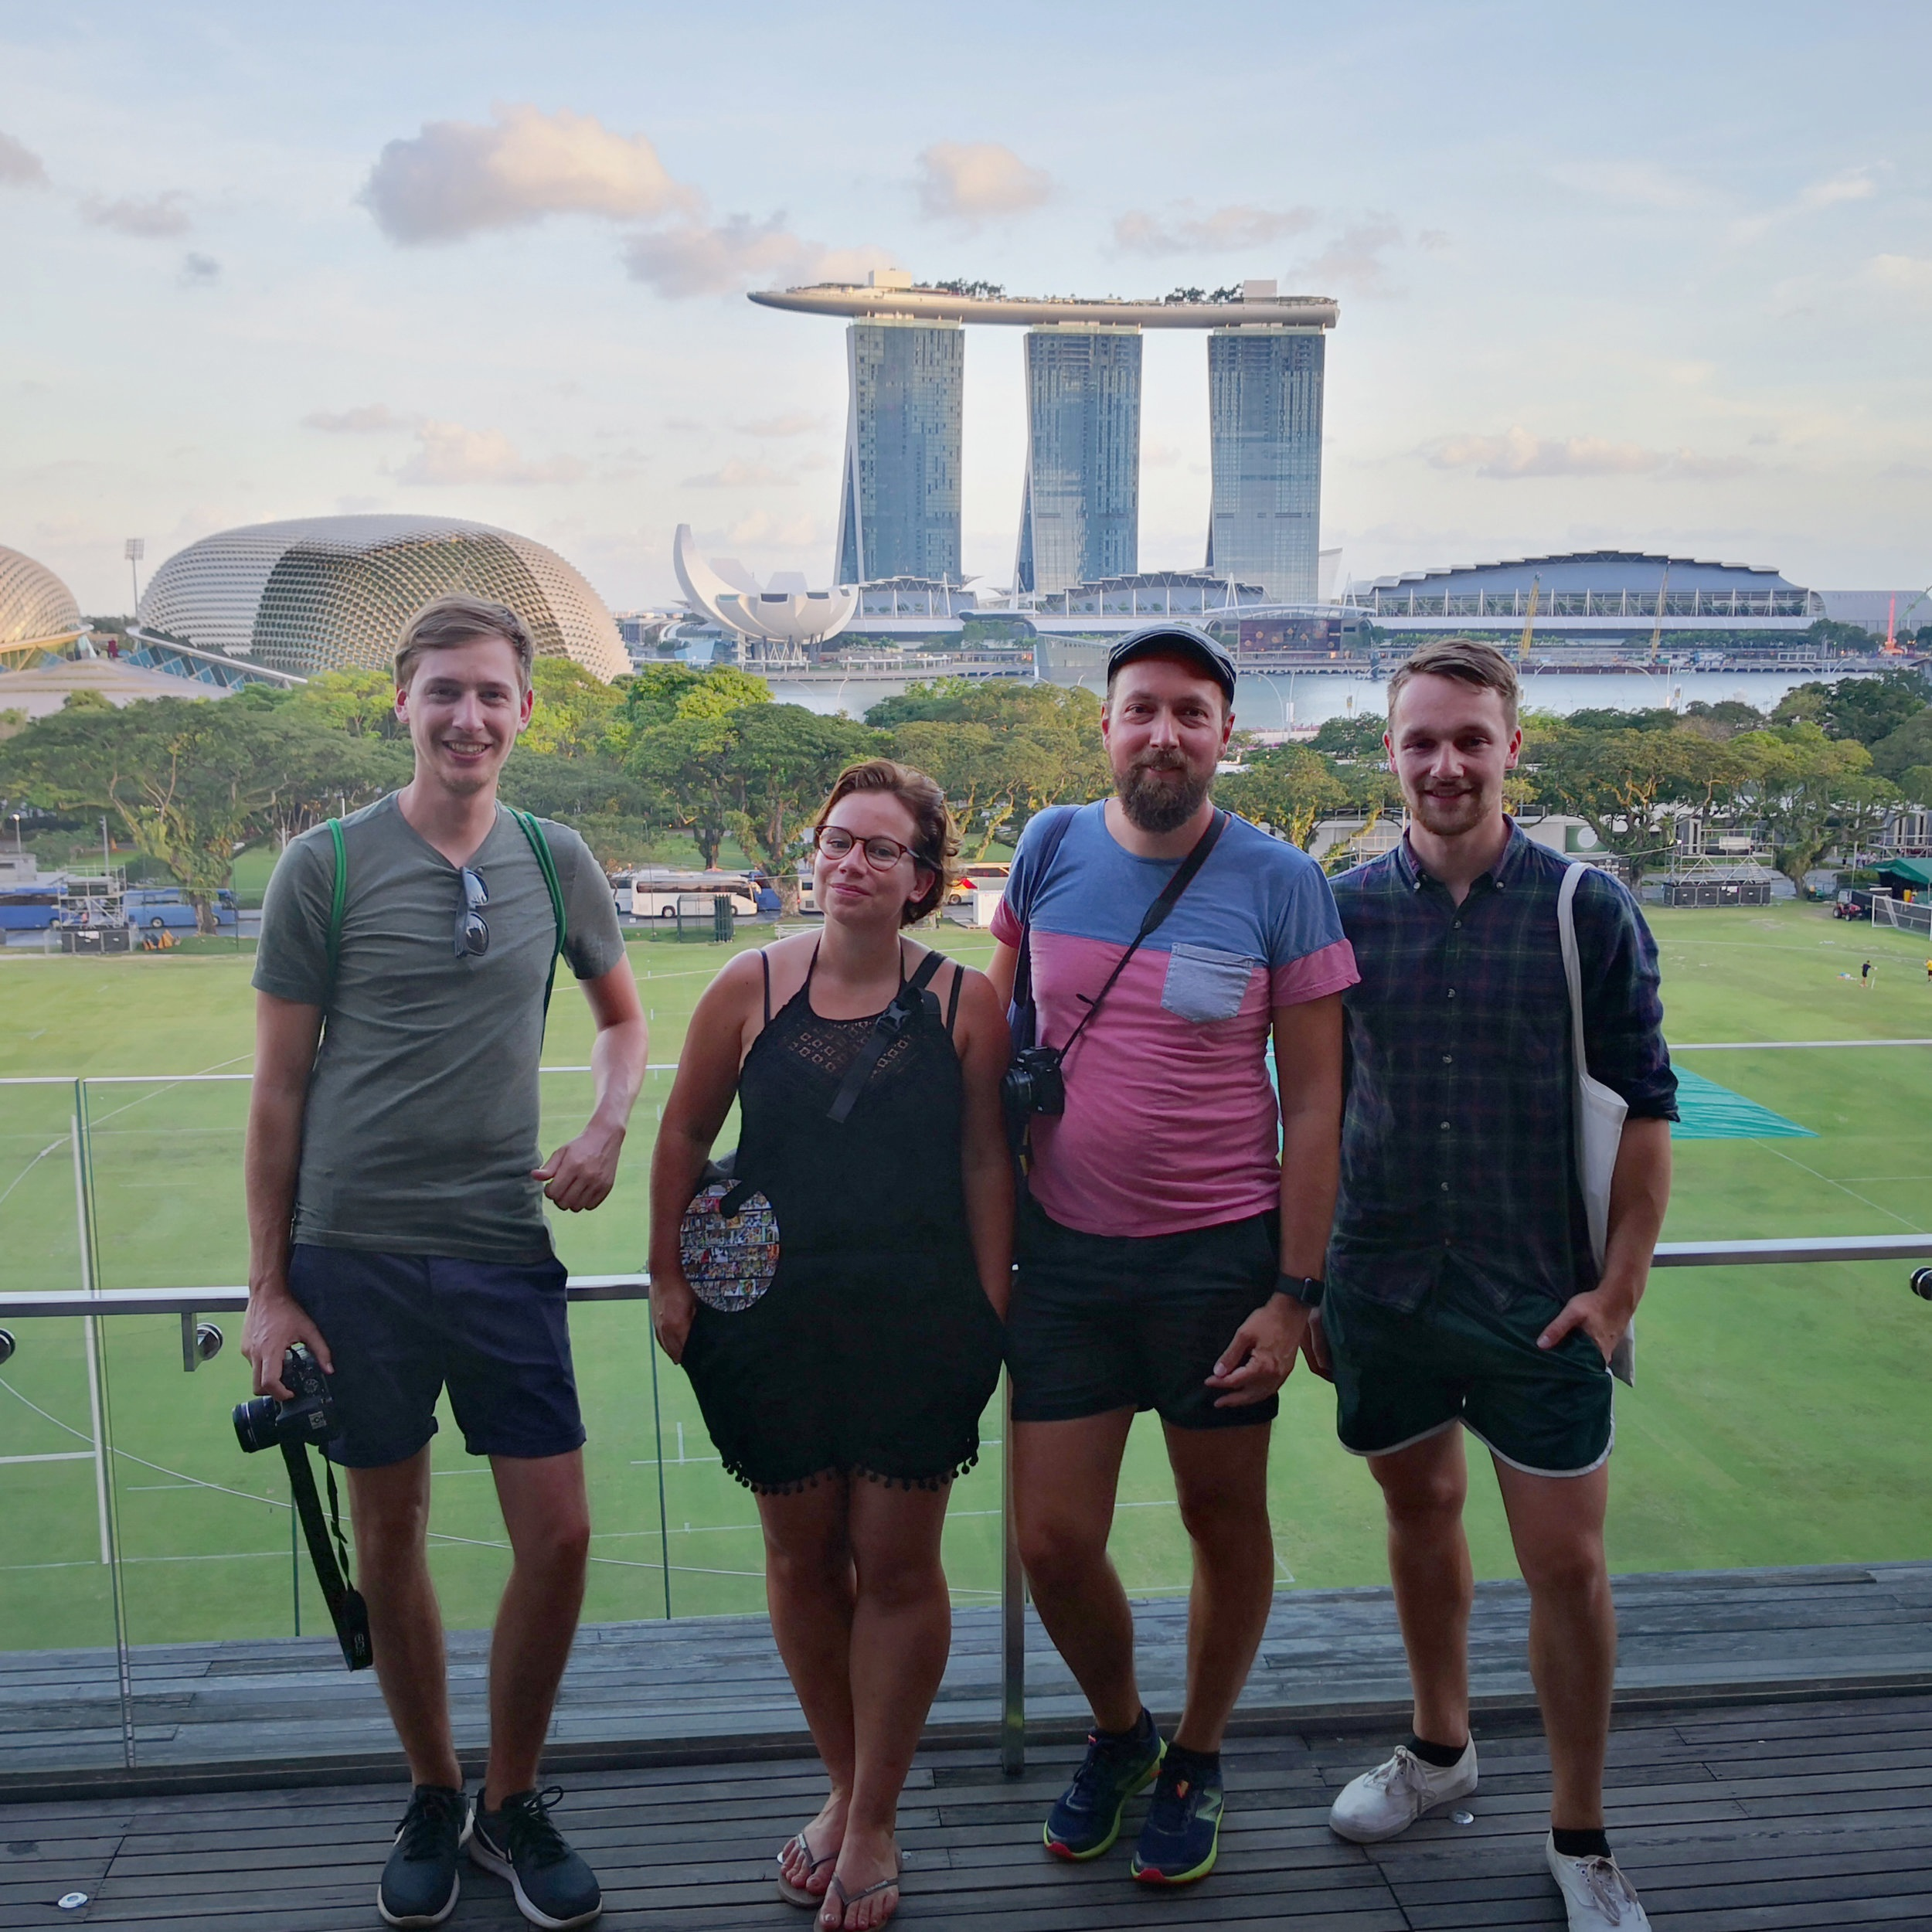 Group Day to Night Tour - A 4.5-hour exploration of Singapore. See the city at its most captivating & learn about the history and development of the Lion City. Includes Singapore River Cruise, local Hawker Centre dinner and a traditional Chinese Tea Ceremony.Maximum of 9 people.Monday, Wednesday and FridayUS$110 per person →